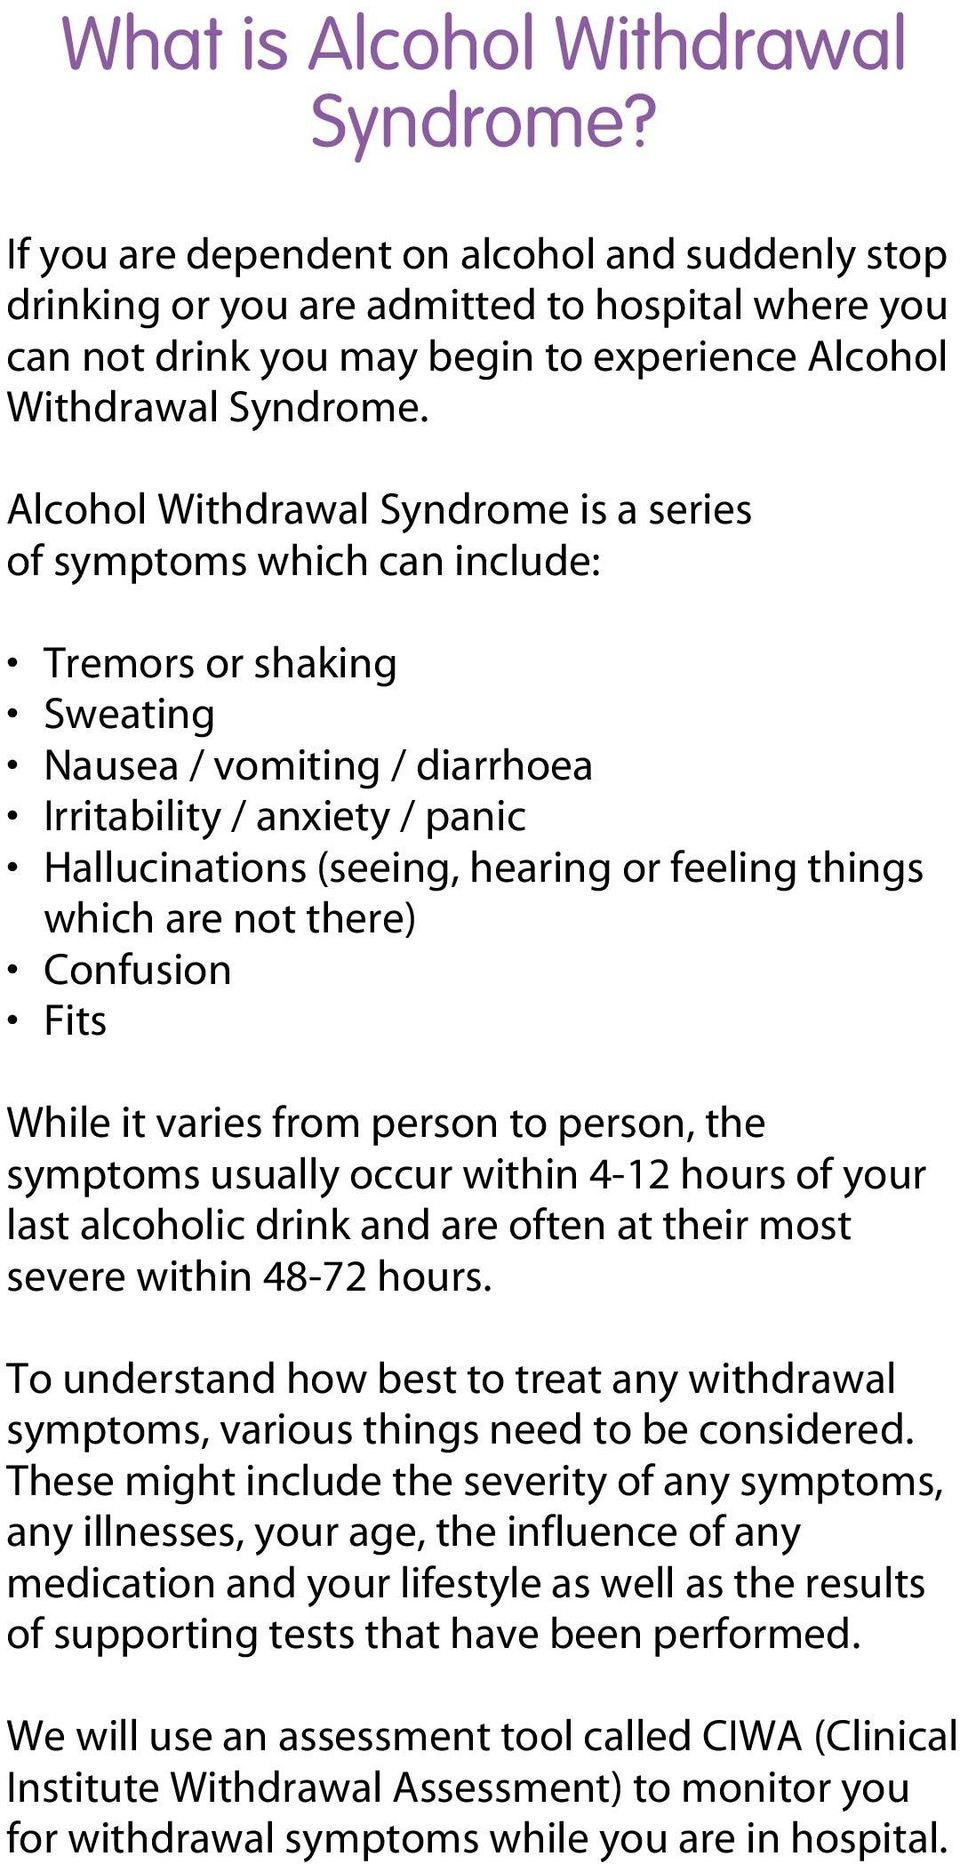 Alcohol Withdrawal Syndrome is a series of symptoms which can include: Tremors or shaking Sweating Nausea / vomiting / diarrhoea Irritability / anxiety / panic Hallucinations (seeing, hearing or